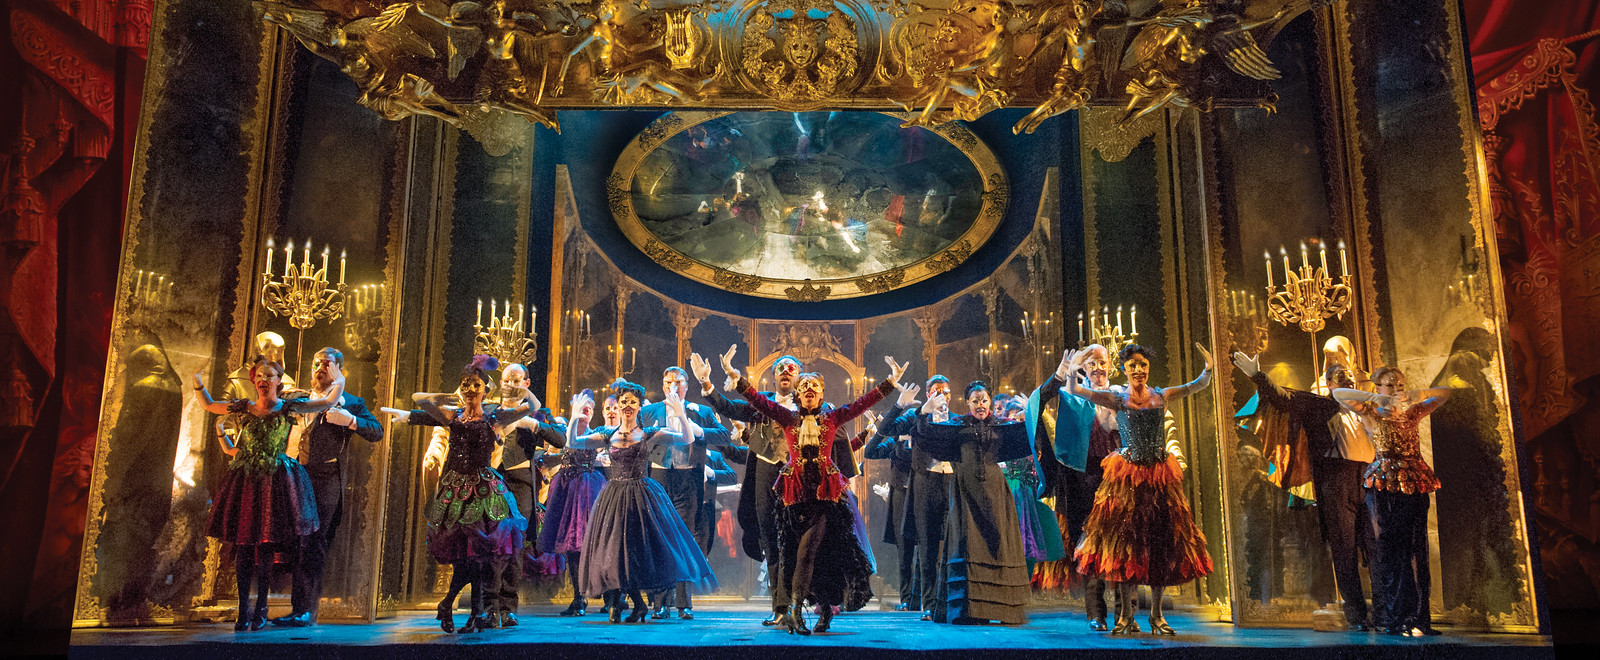 Broadway in Detroit: The Phantom Of The Opera at the Detroit Opera House January 24 - February 3, 2019 | via Wading in Big Shoes